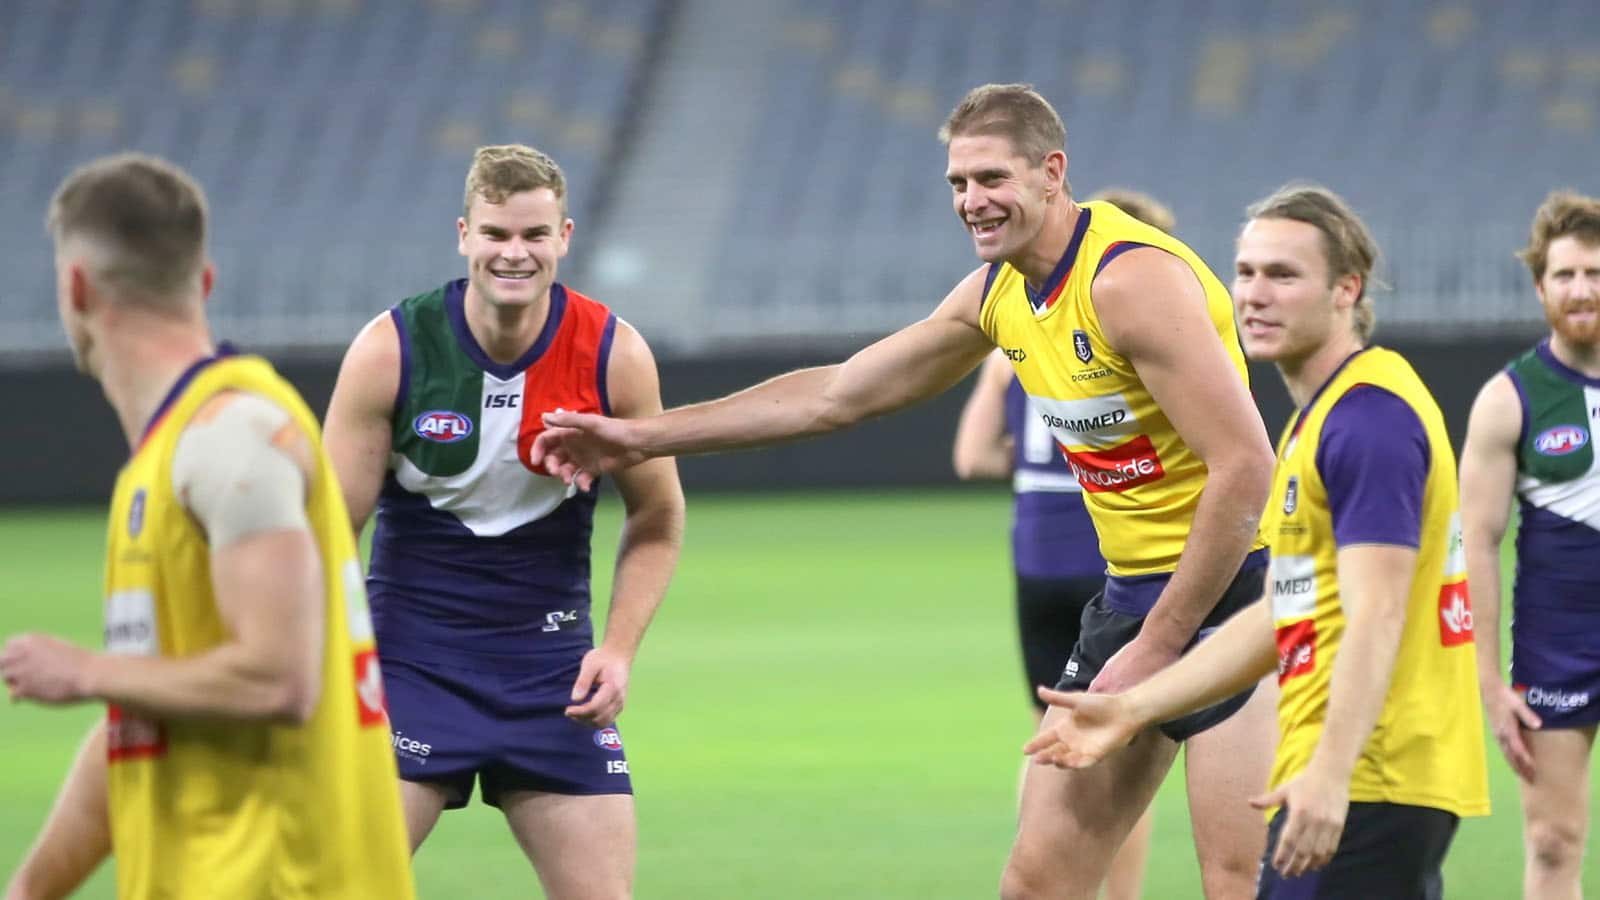 Darcy had some heartfelt words to bid farewell to his mentor and great mate. - Fremantle,Fremantle Dockers,Sean Darcy,Aaron Sandilands